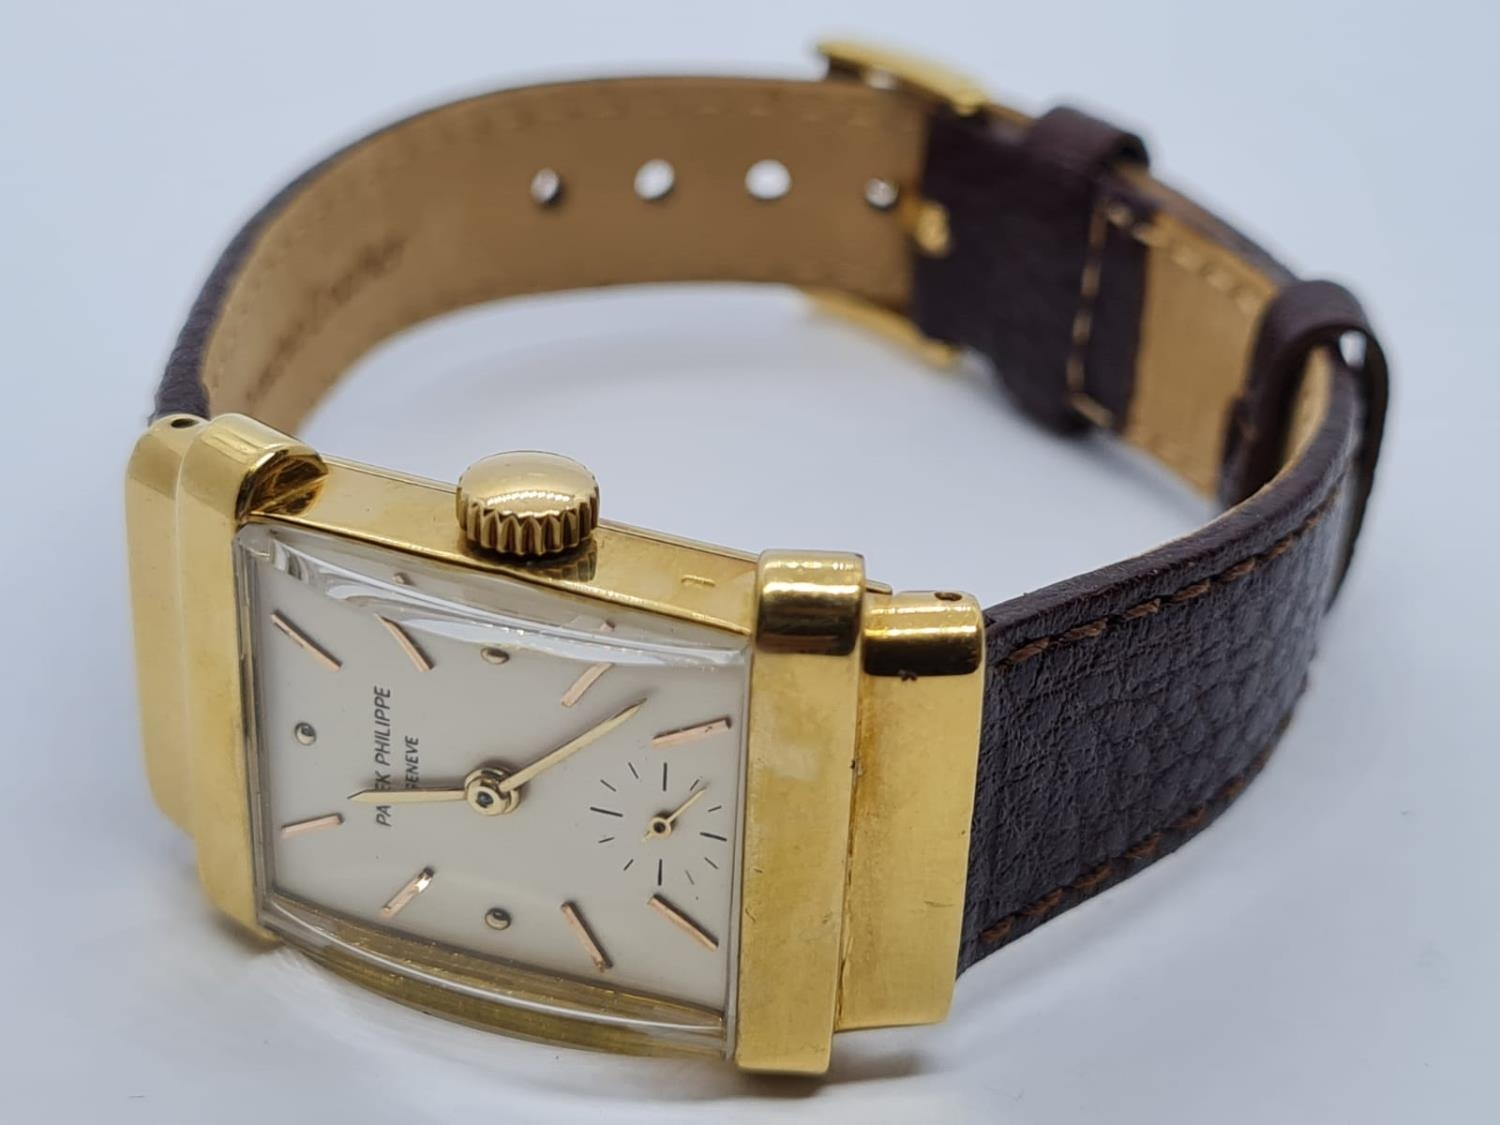 Patek Philippe Geneve WATCH tank style with rectangular face Case: 20x40mm. Brown Leather Strap. - Image 4 of 5